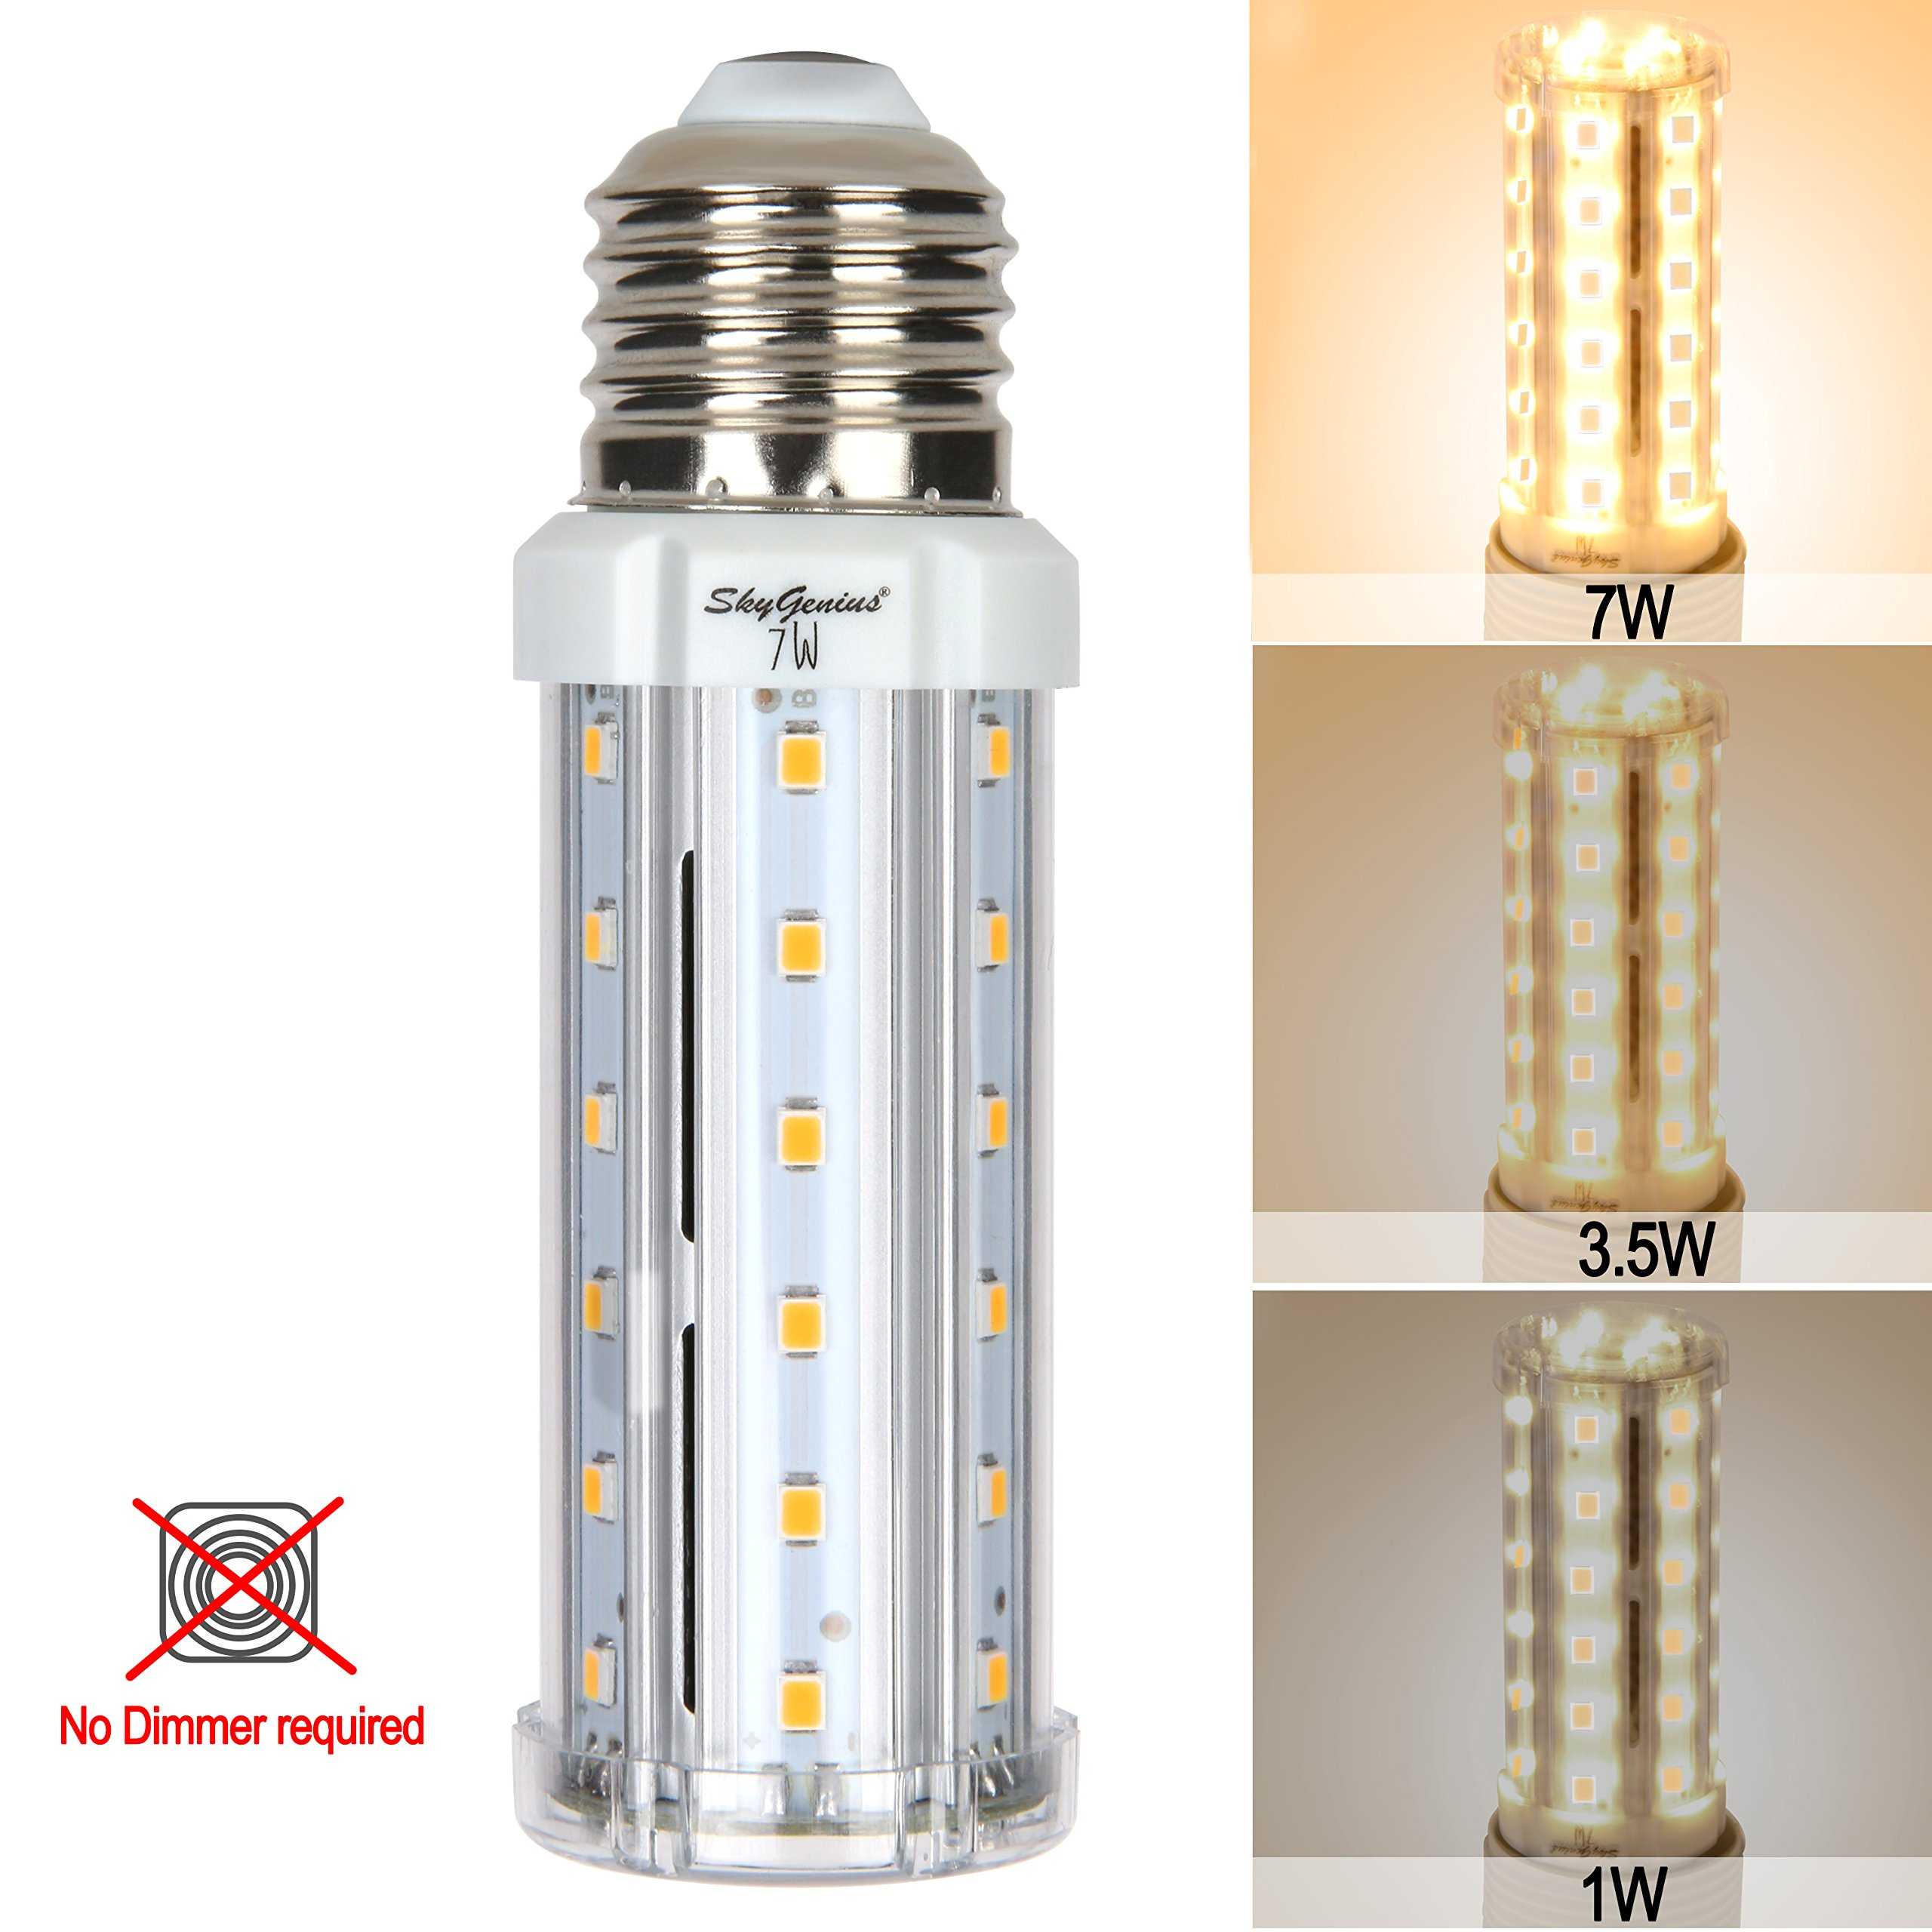 3 Way LED Corn Light Bulb Warm White 7/3.5/1w E26 Socket 3200K,70/35/10w Incandescent Equivalent,3 Way CFL Replacement,Brightness Switchable for Chandelier Reading Table Floor Bedside Nightstand Lamps